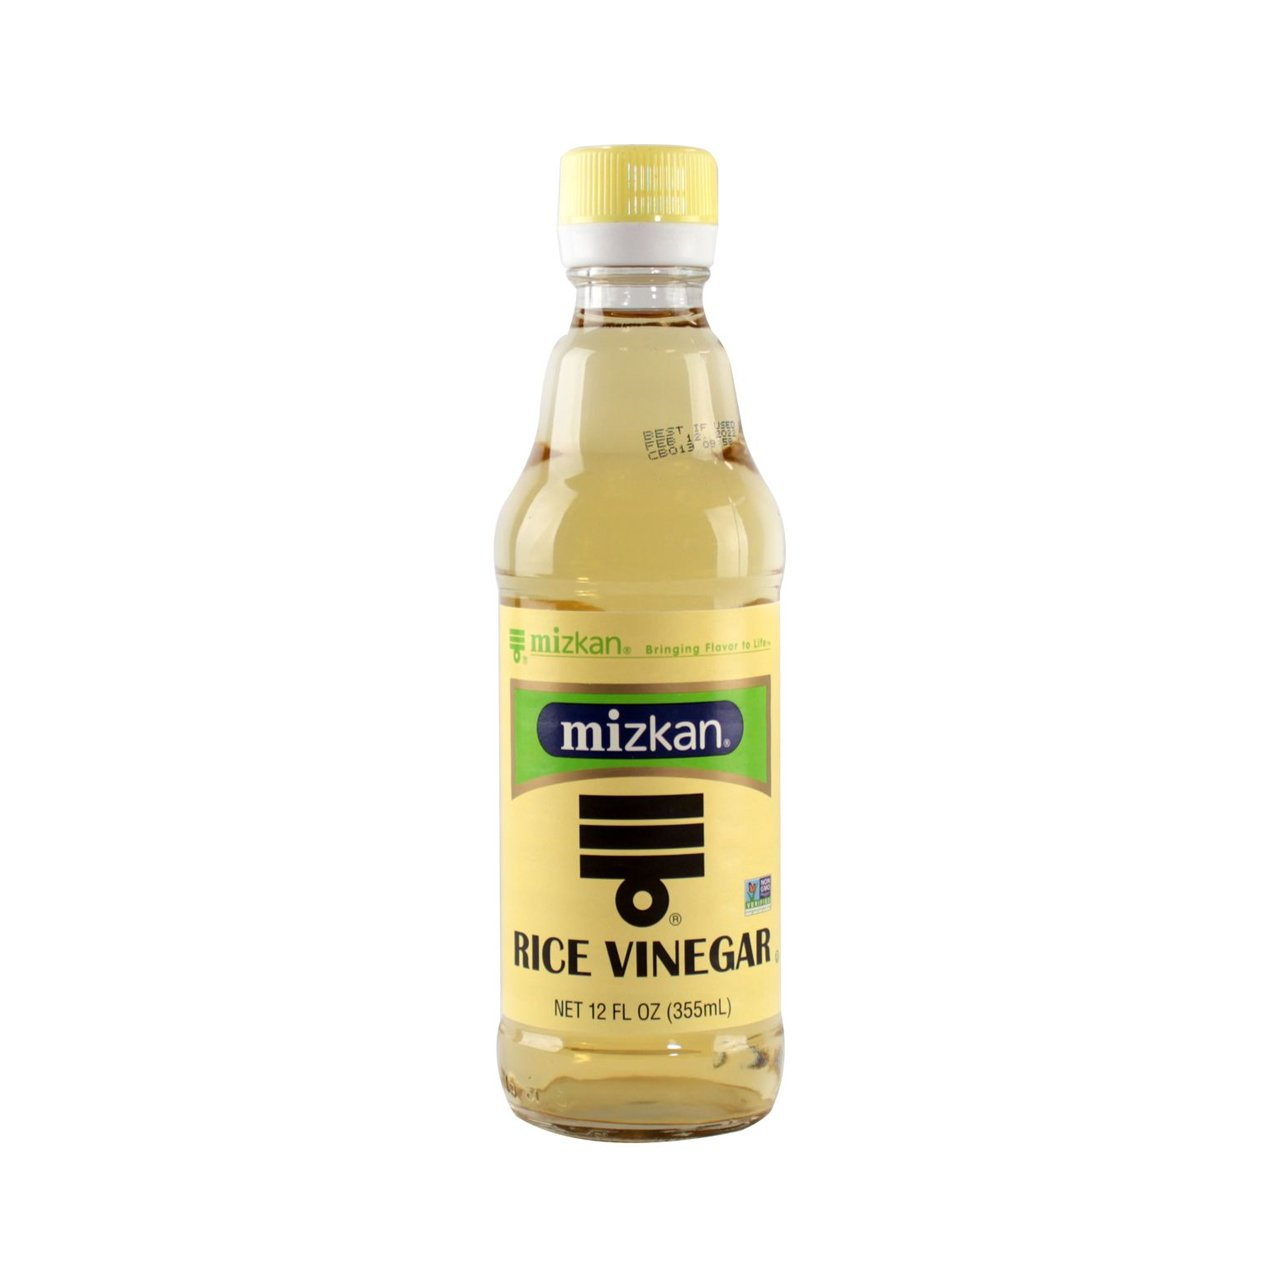 Mizkan Rice Vinegar 12floz (355ml) (SKU: 33315)